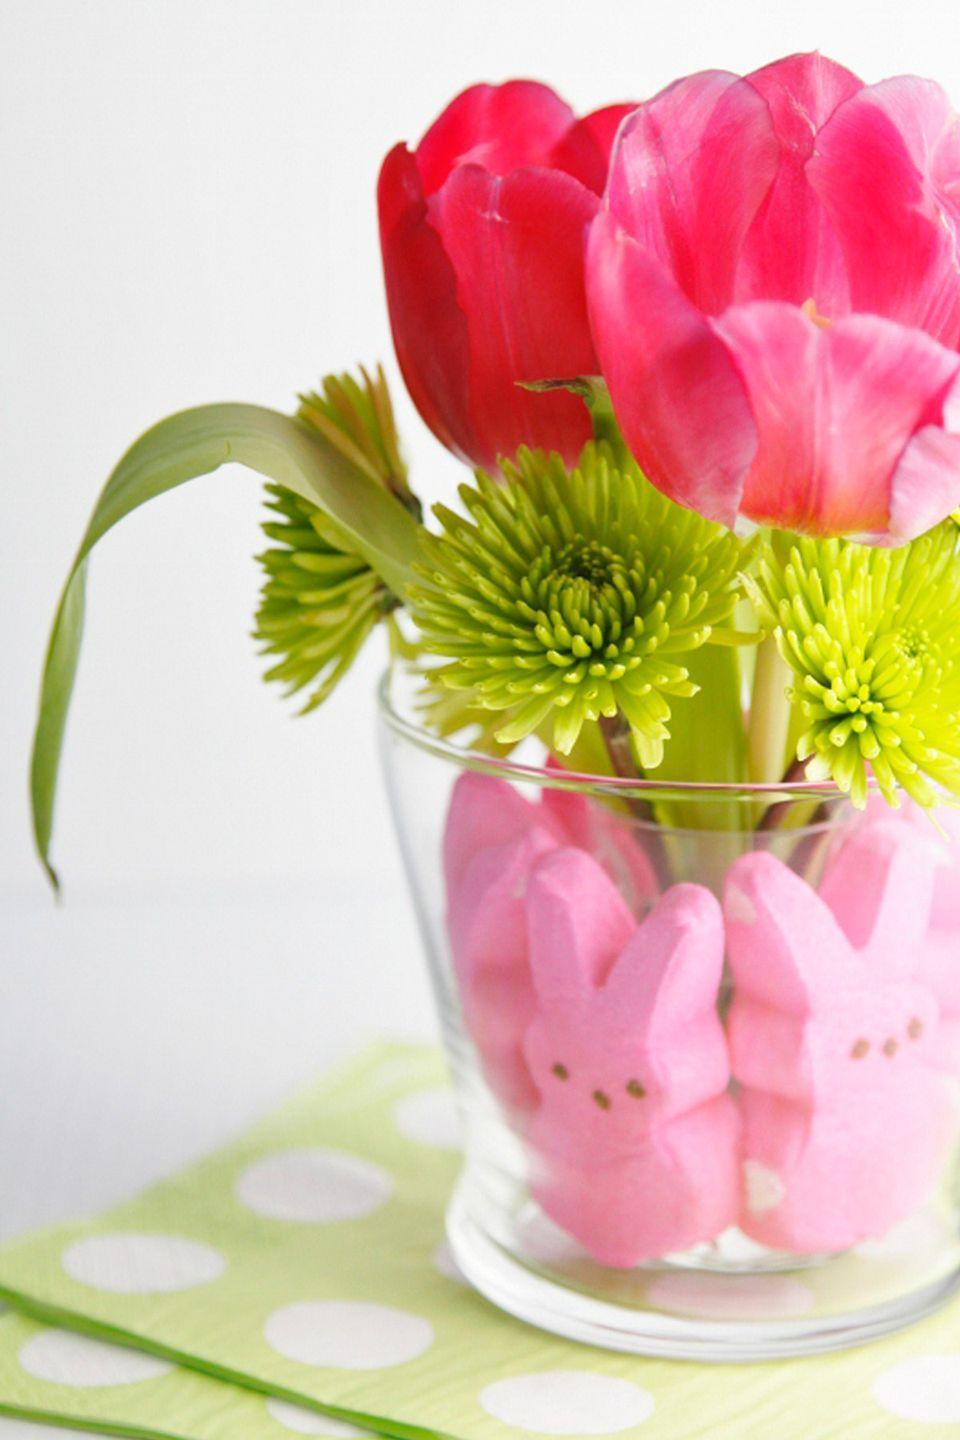 """<p>The key to this arrangement is picking out flowers that are just as vibrant and eye-catching as the pink marshmallow treats around the edge of the vase.</p><p><em><a href=""""https://bellalimento.com/2013/02/19/diy-peeps-centerpiece/"""" rel=""""nofollow noopener"""" target=""""_blank"""" data-ylk=""""slk:Get the tutorial at Bell'alimento »"""" class=""""link rapid-noclick-resp"""">Get the tutorial at Bell'alimento »</a></em> </p><p><strong><em>Pottery Barn Shouldered Clear Glass Vase, $41 </em></strong><a class=""""link rapid-noclick-resp"""" href=""""https://go.redirectingat.com?id=74968X1596630&url=https%3A%2F%2Fwww.potterybarn.com%2Fproducts%2Fshouldered-clear-glass-vase%2F&sref=https%3A%2F%2Fwww.housebeautiful.com%2Fentertaining%2Fflower-arrangements%2Fg19409803%2Feaster-flower-arrangements%2F"""" rel=""""nofollow noopener"""" target=""""_blank"""" data-ylk=""""slk:BUY NOW"""">BUY NOW</a></p>"""